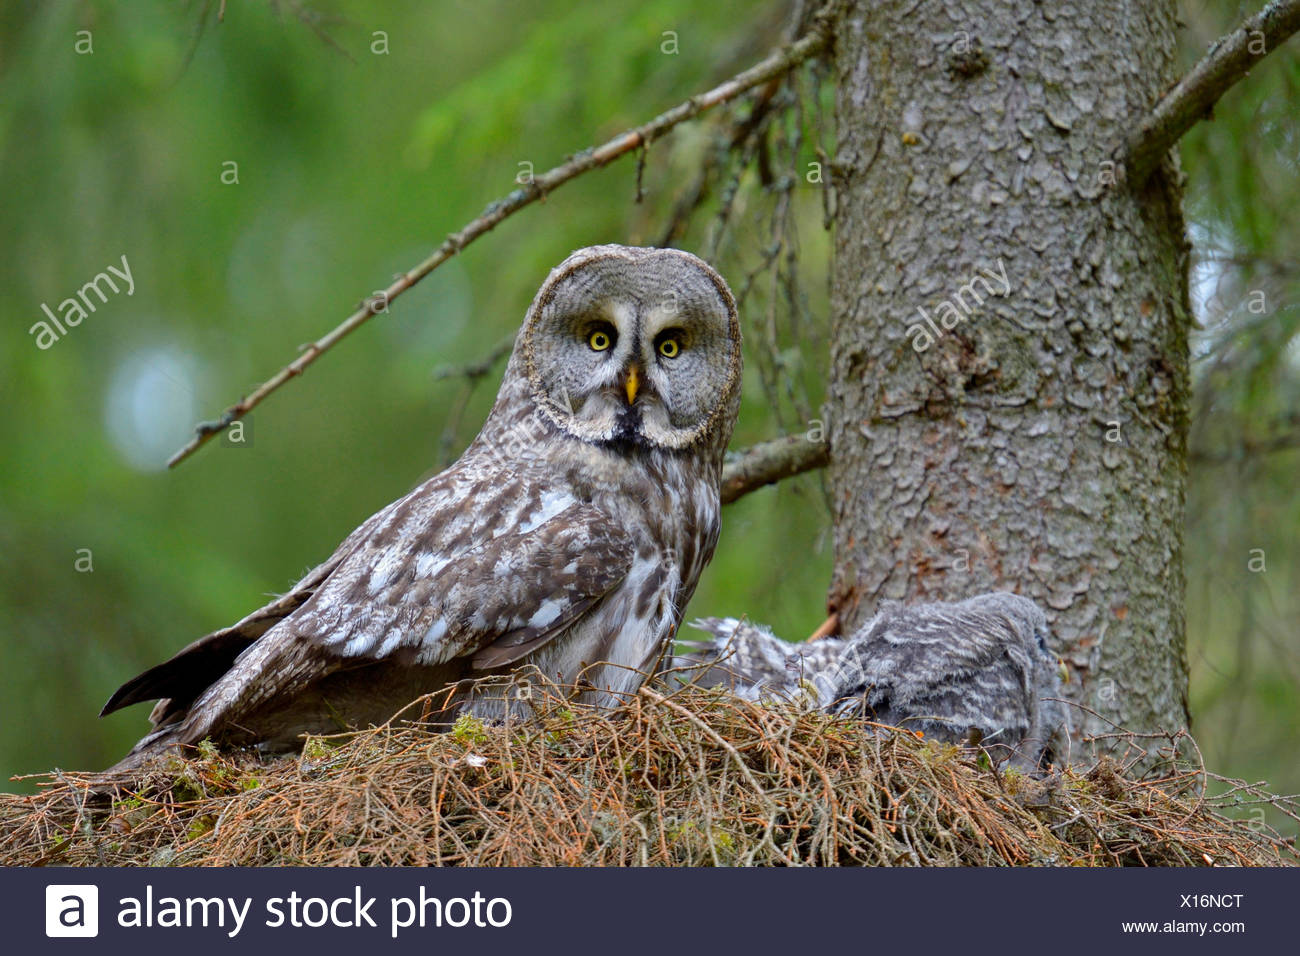 great grey owl (Strix nebulosa), on the nest with chicks, Finland Stock Photo